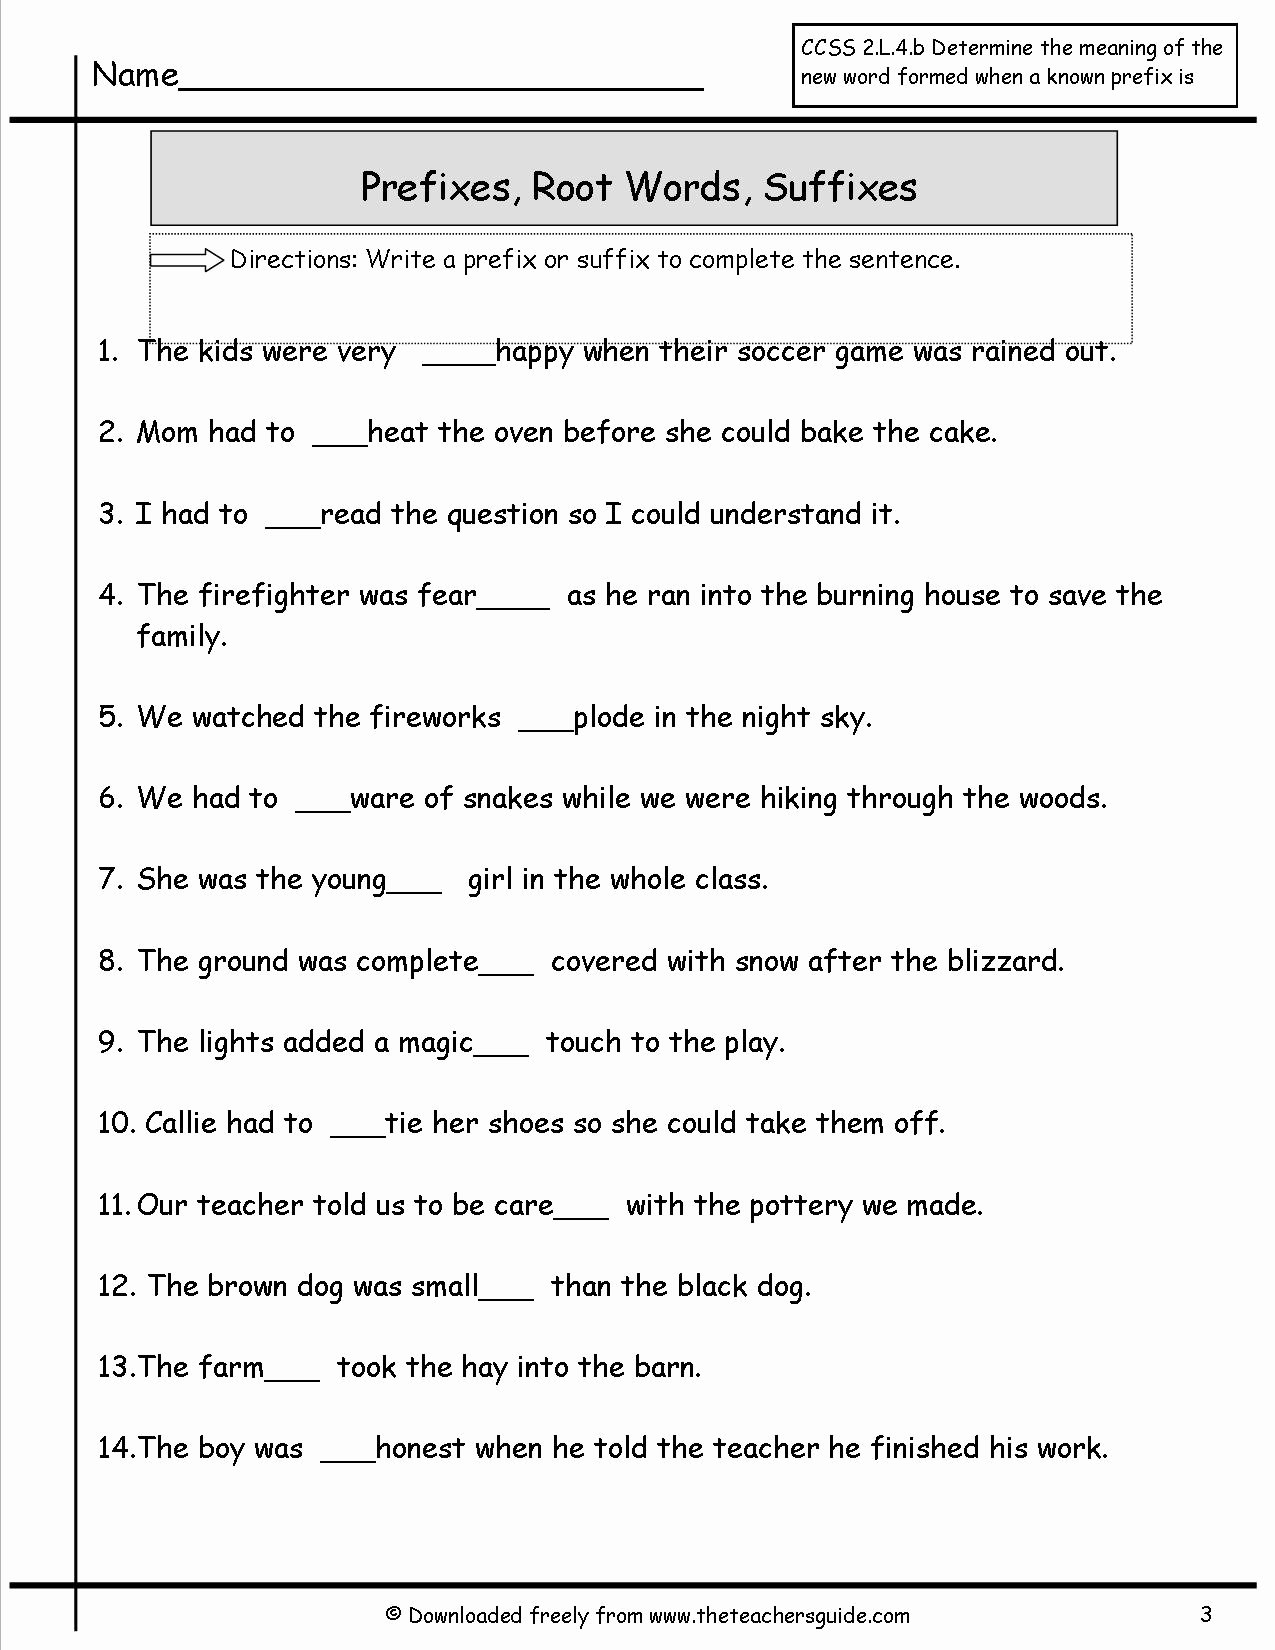 Medical Terminology Suffixes Worksheet Lovely Wonders Second Grade Unit Two Week Four Printouts